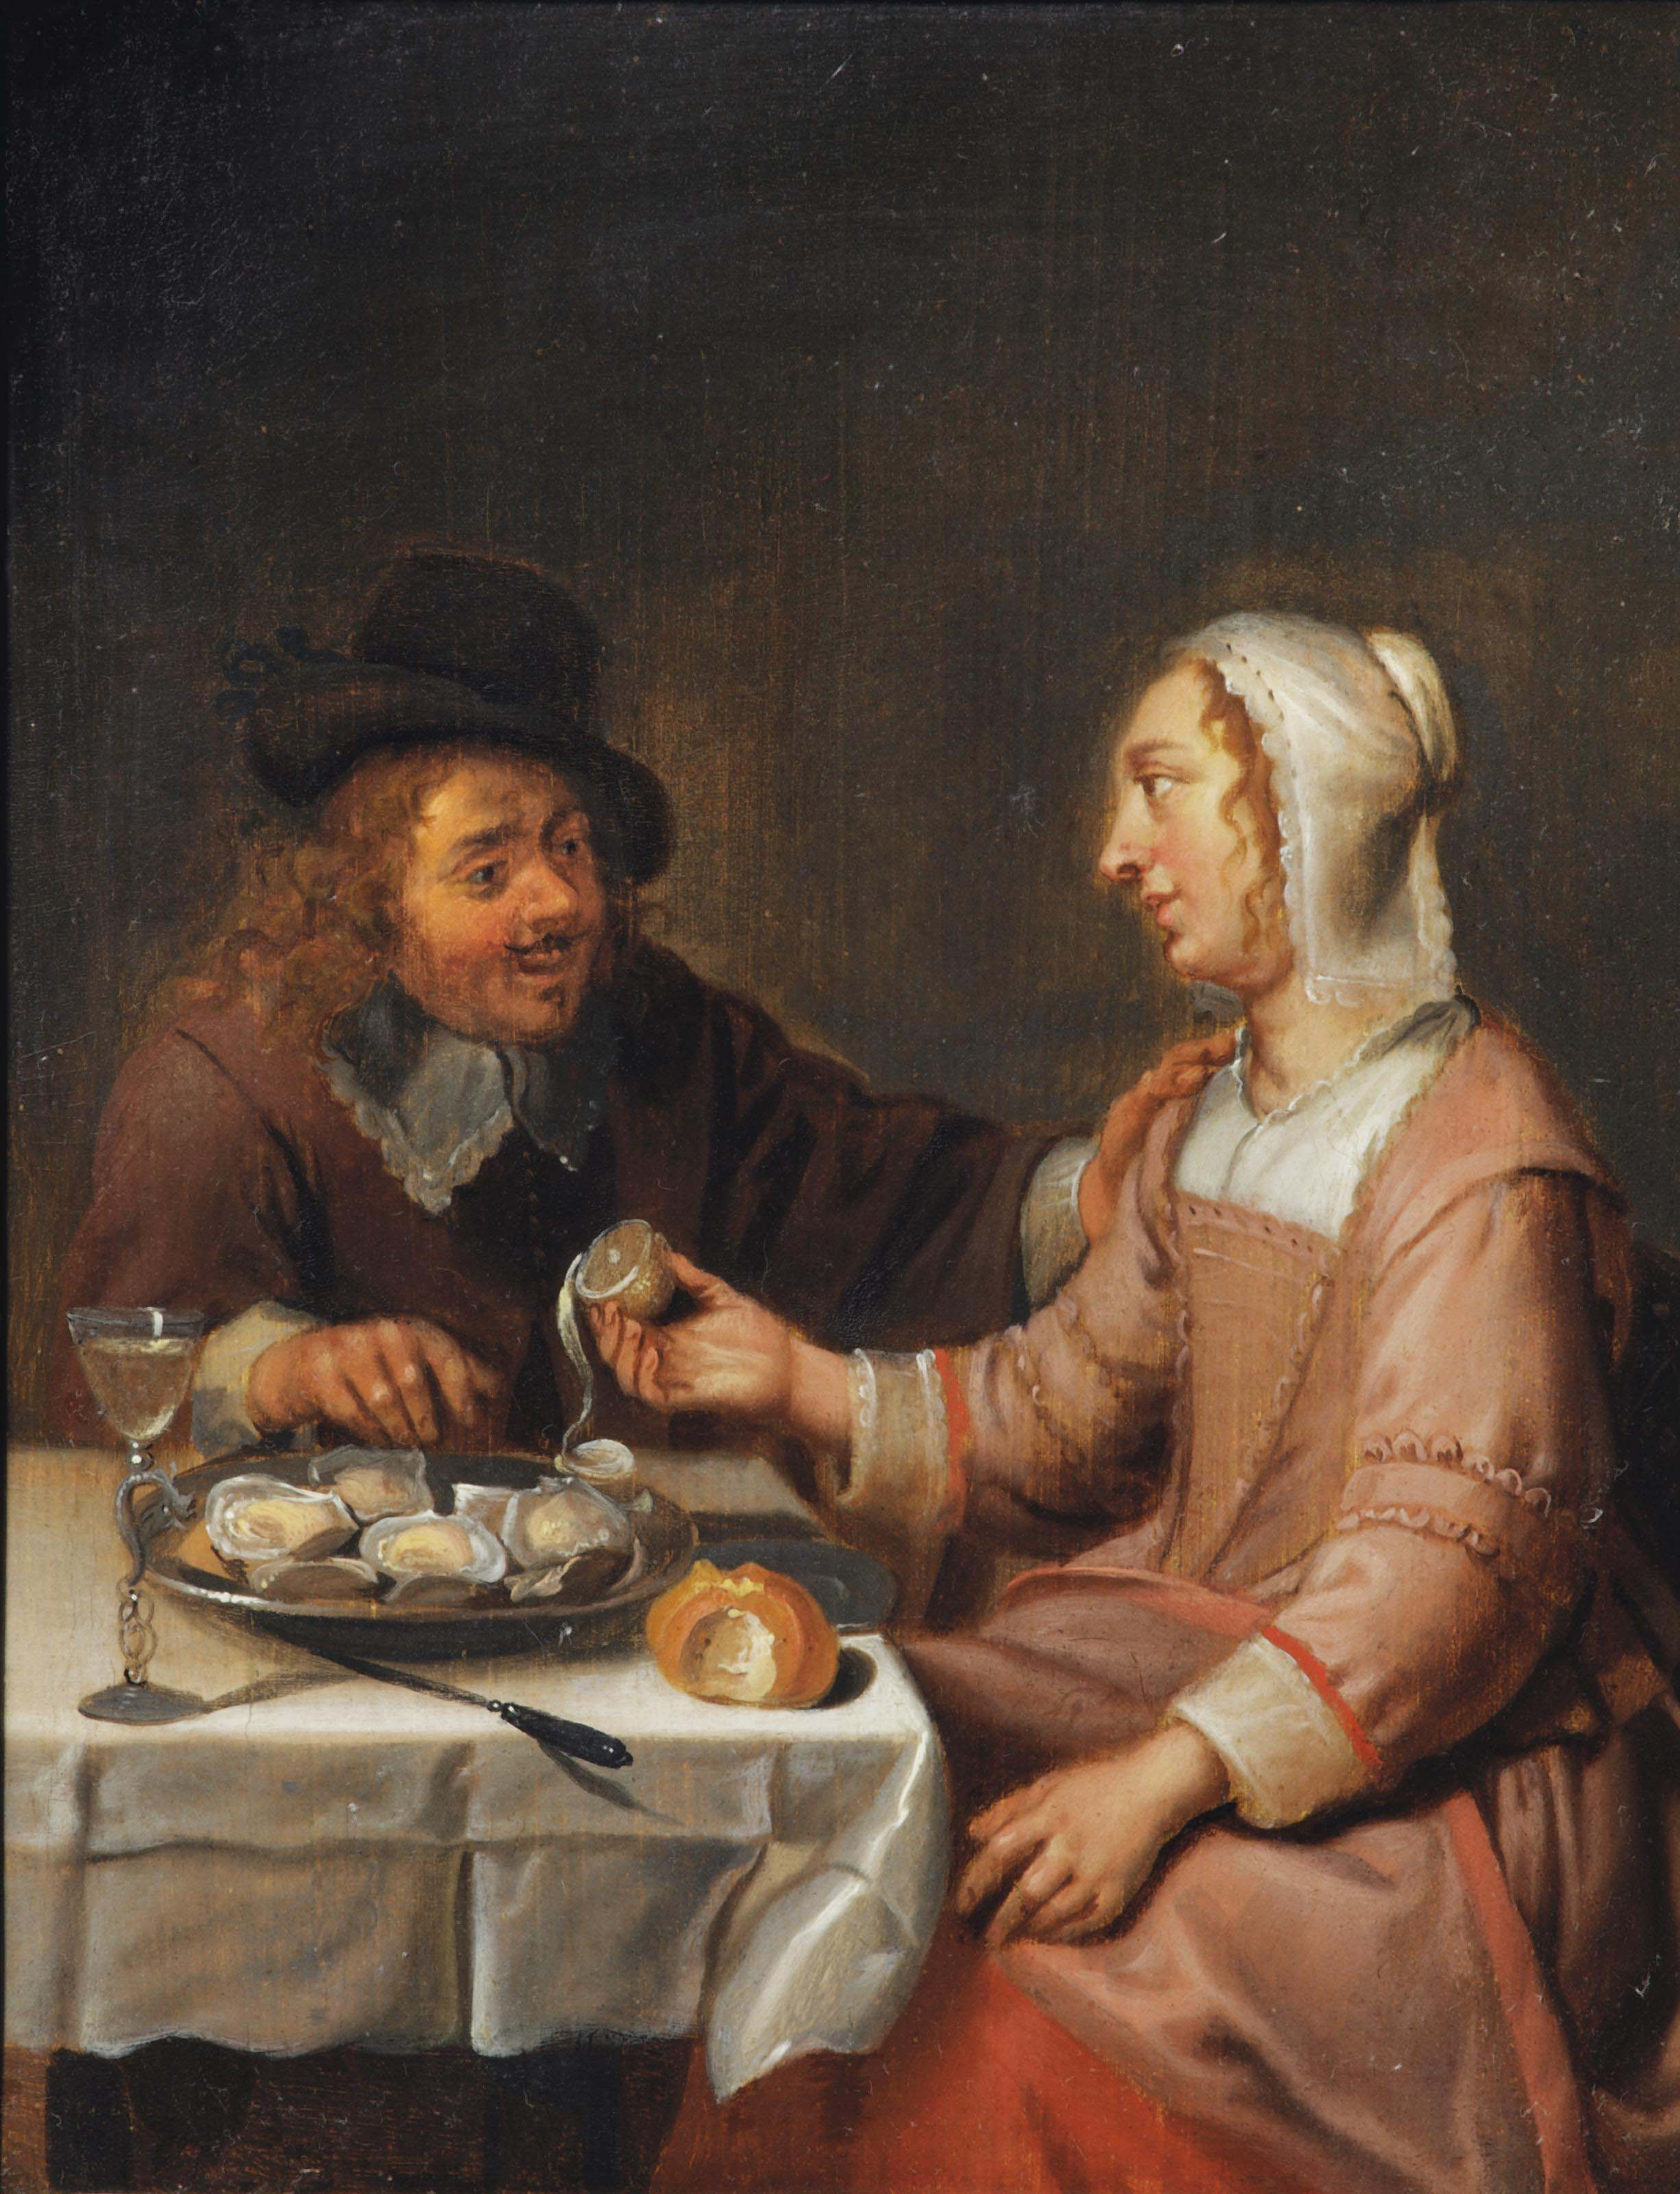 A couple seated at a table, eating oysters